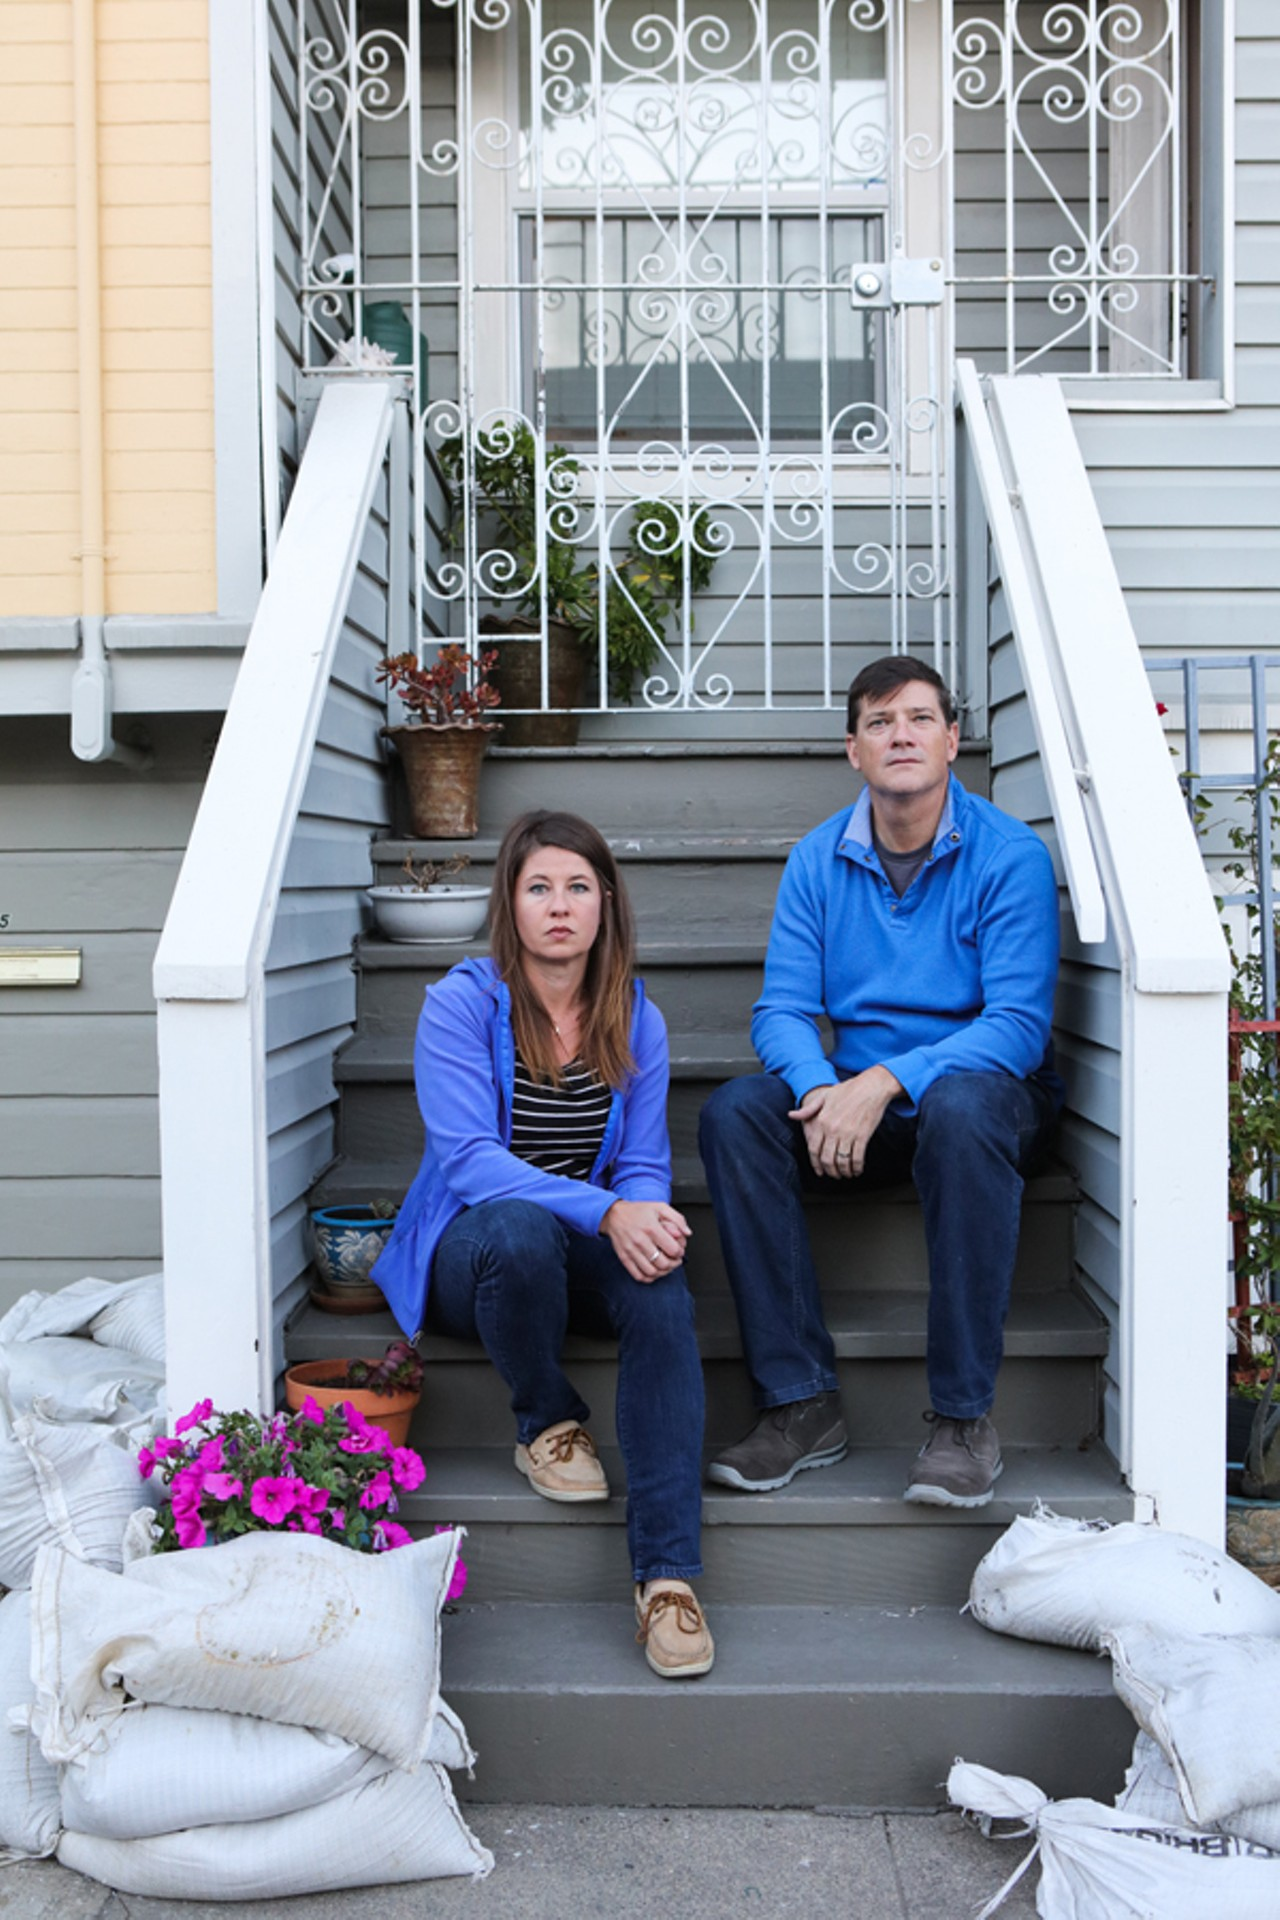 Shit Storm Why Wont SF Stop Flooding Homes With Sewage - Basement keeps flooding